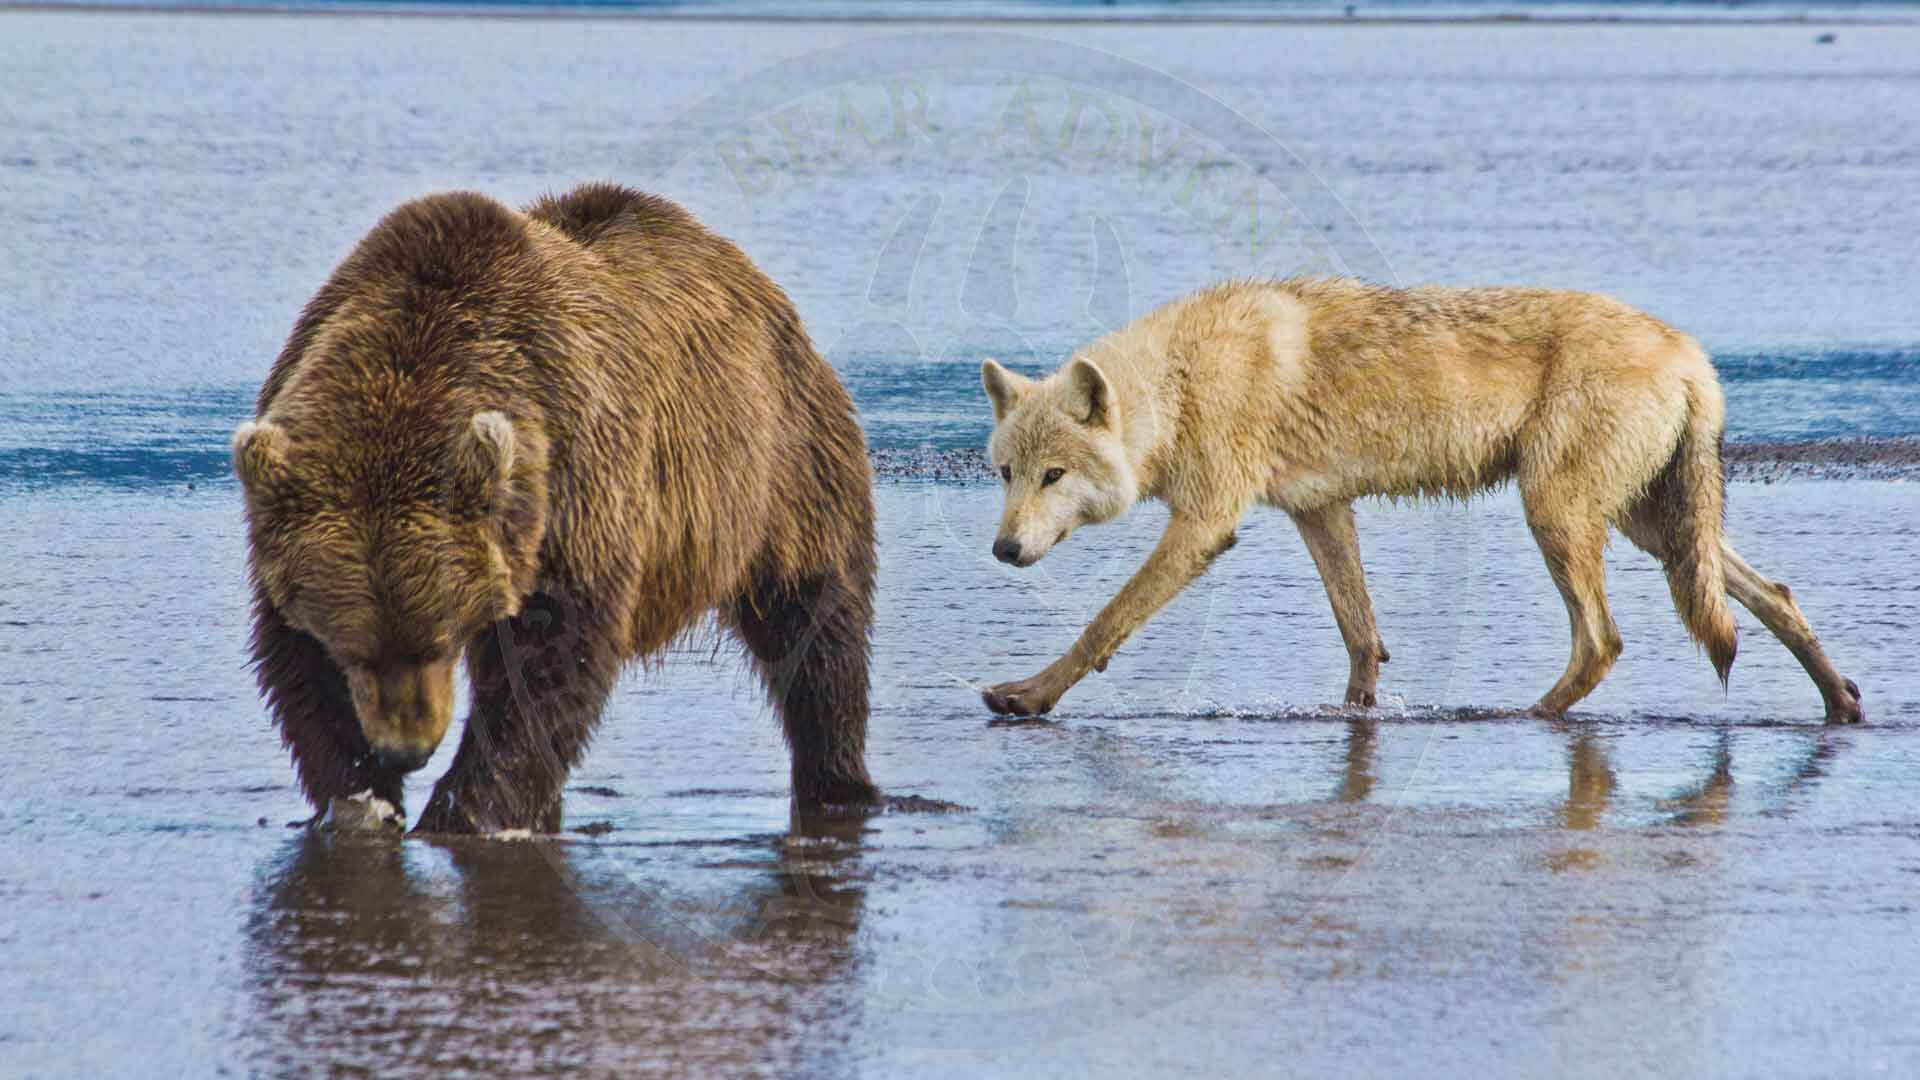 Alaska Brown Bear and Wolf Together